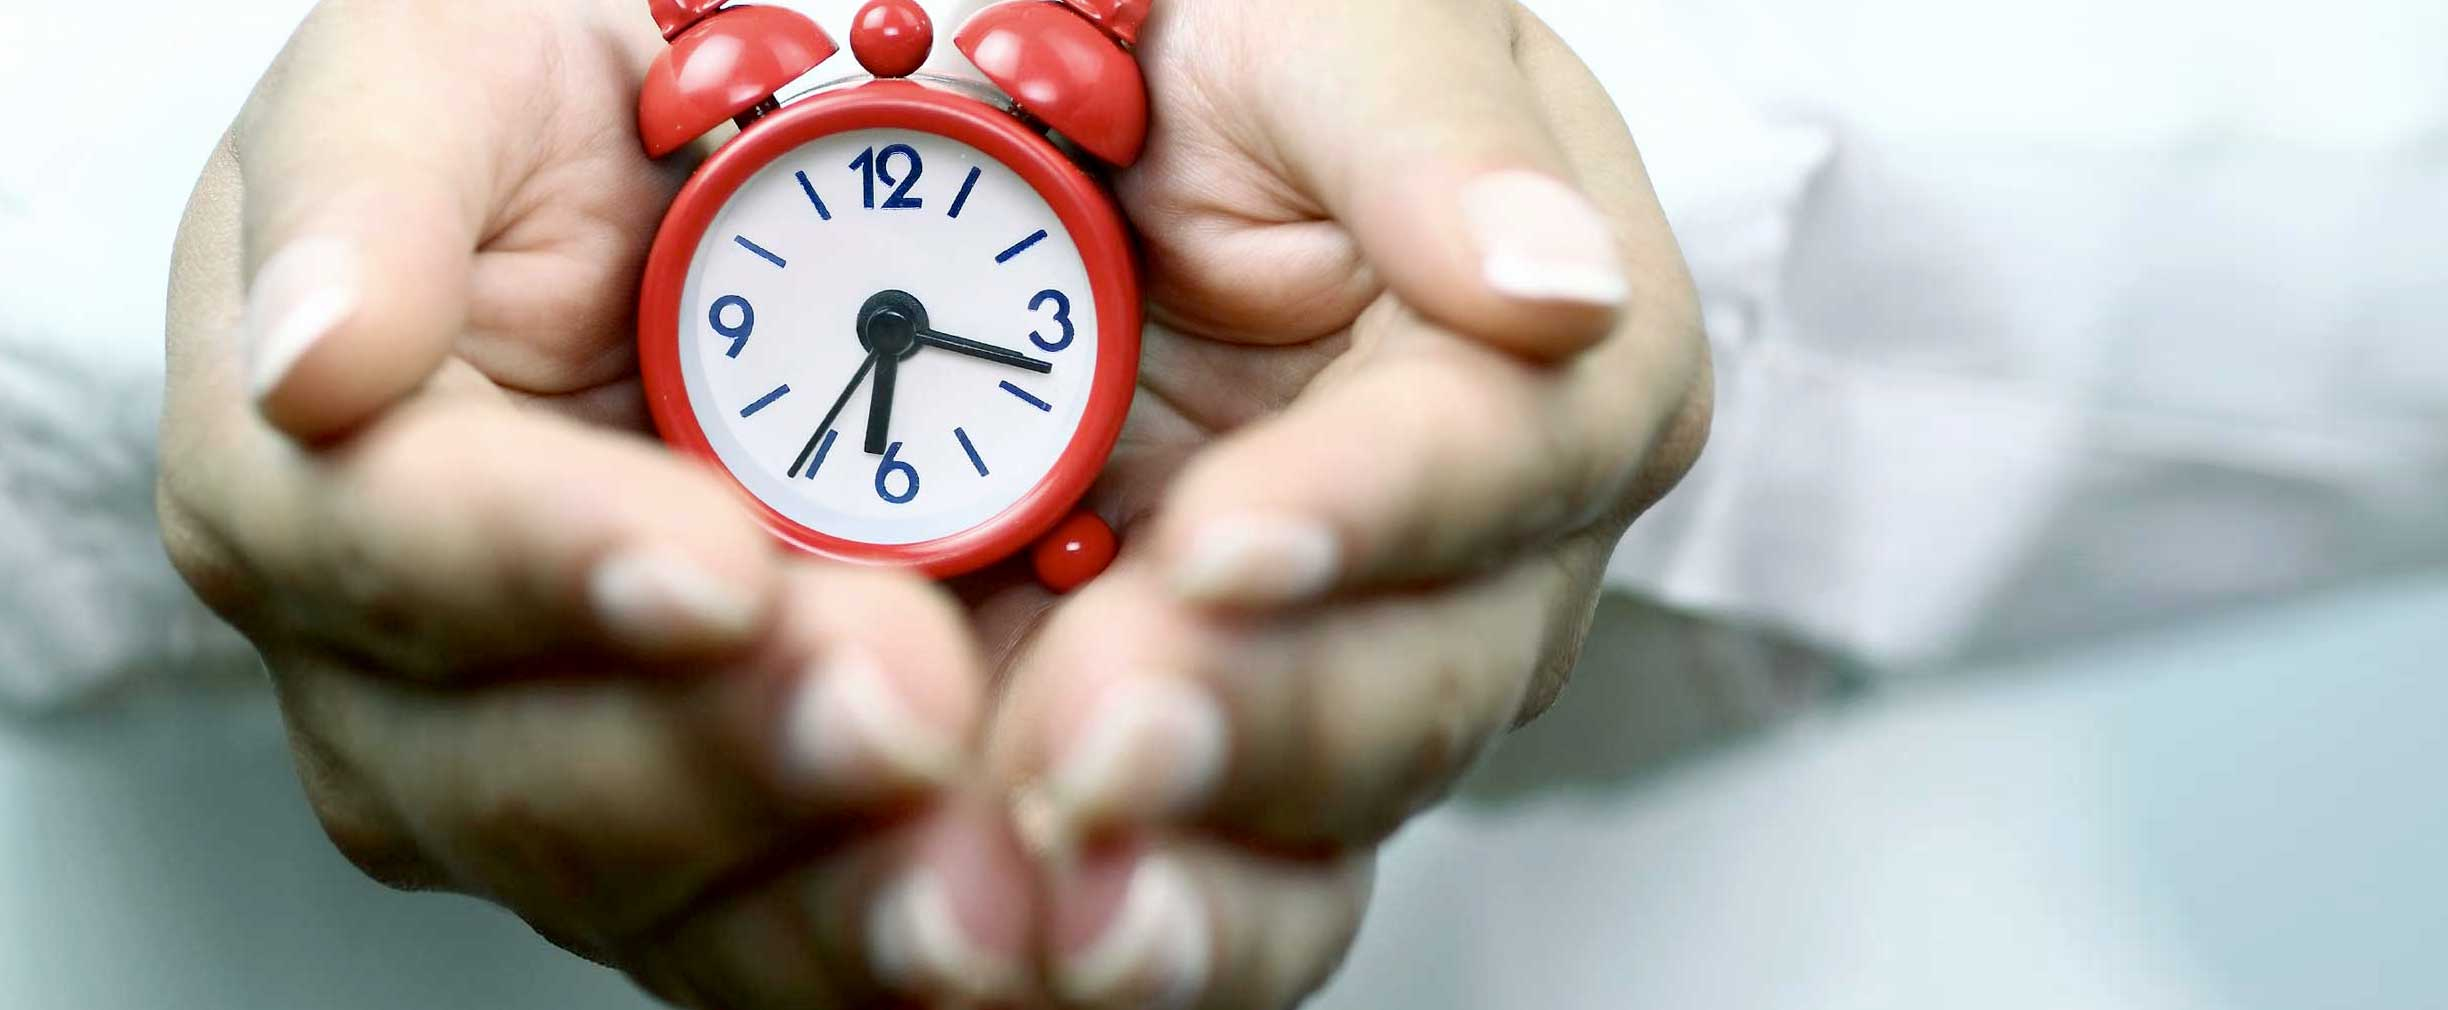 3 Ways to Get More Time Out of Less